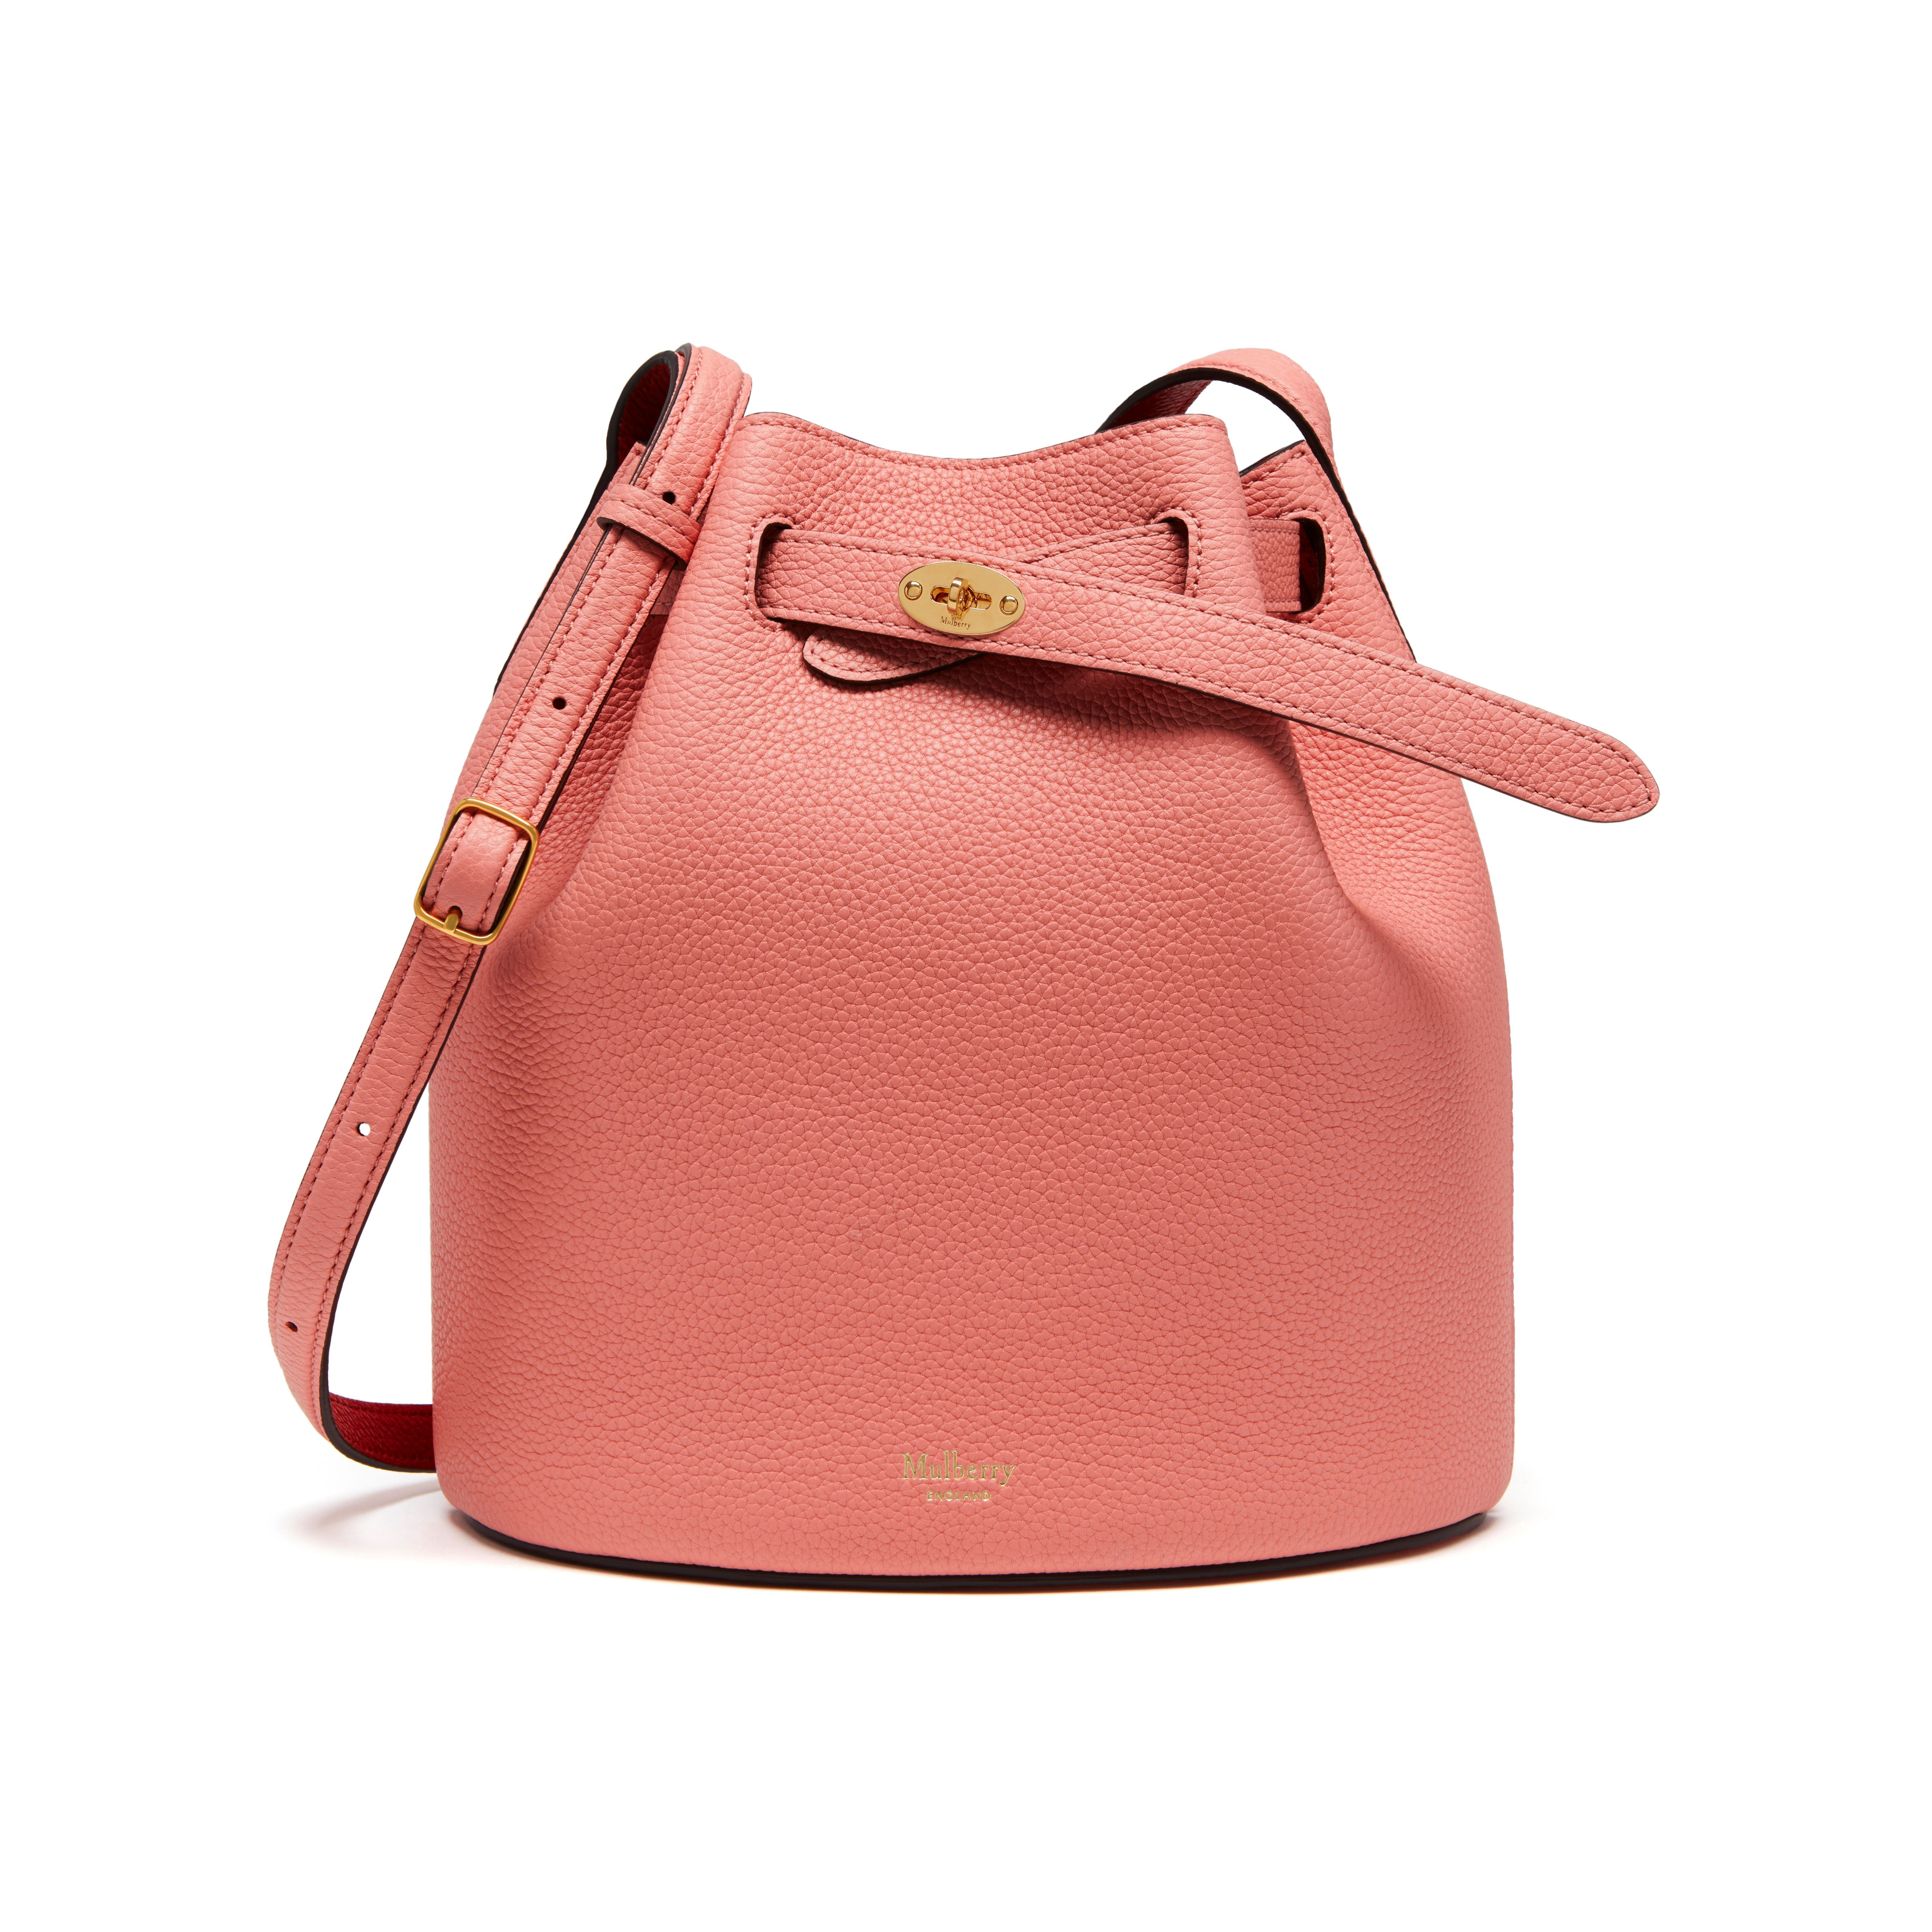 d0effd7663 Shop the Abbey in Macaroon Pink   Scarlet Small Classic Grain Leather at  Mulberry.com. The Abbey is a traditional  bucket bag  with drawstrin…